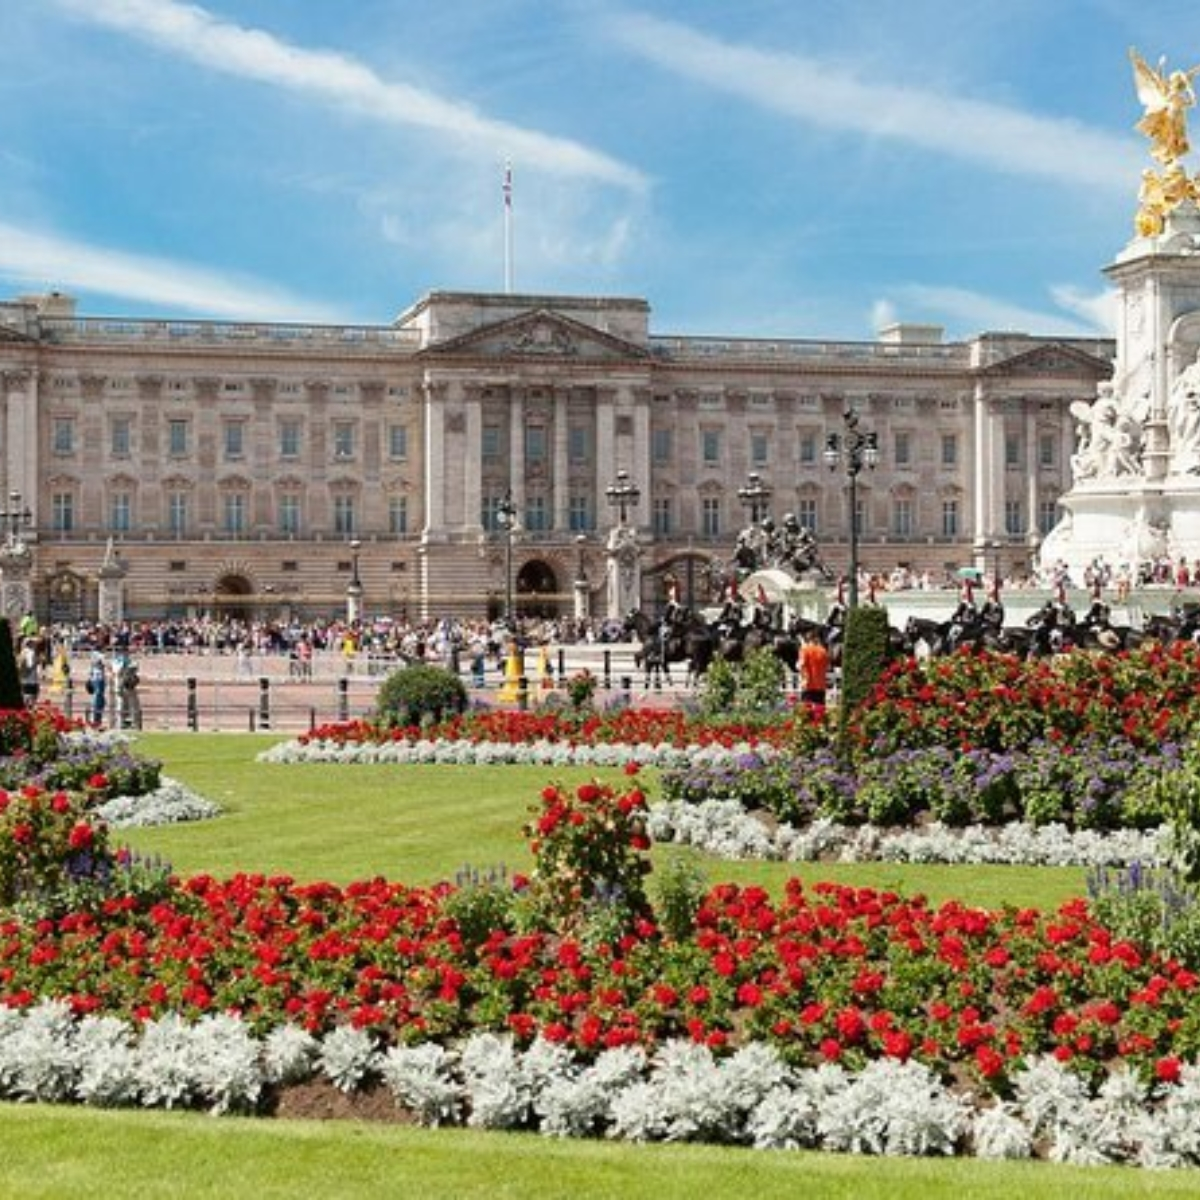 Buckingham Palace Tour - Including Changing of the Guard Ceremony Images